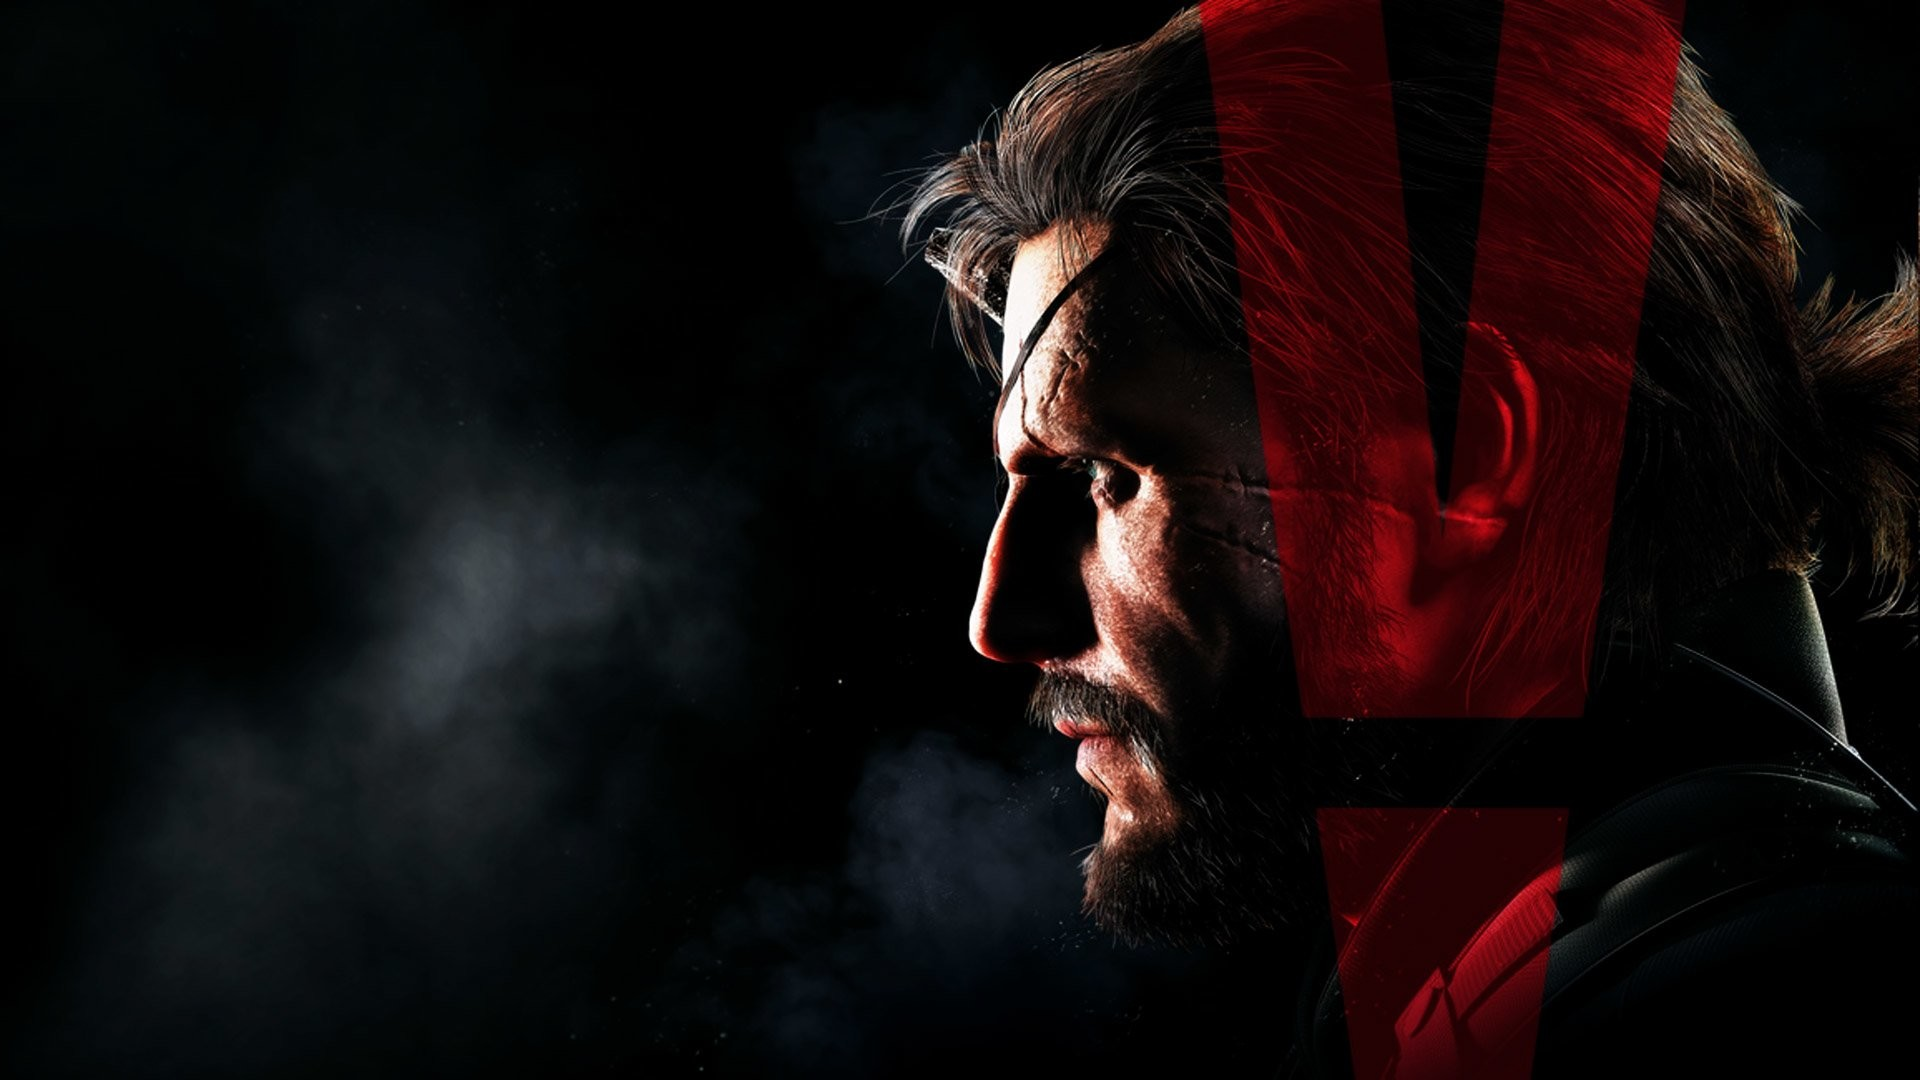 Hd Abstract Wallpapers For Iphone 5 Mgsv Hd Wallpaper 90 Images